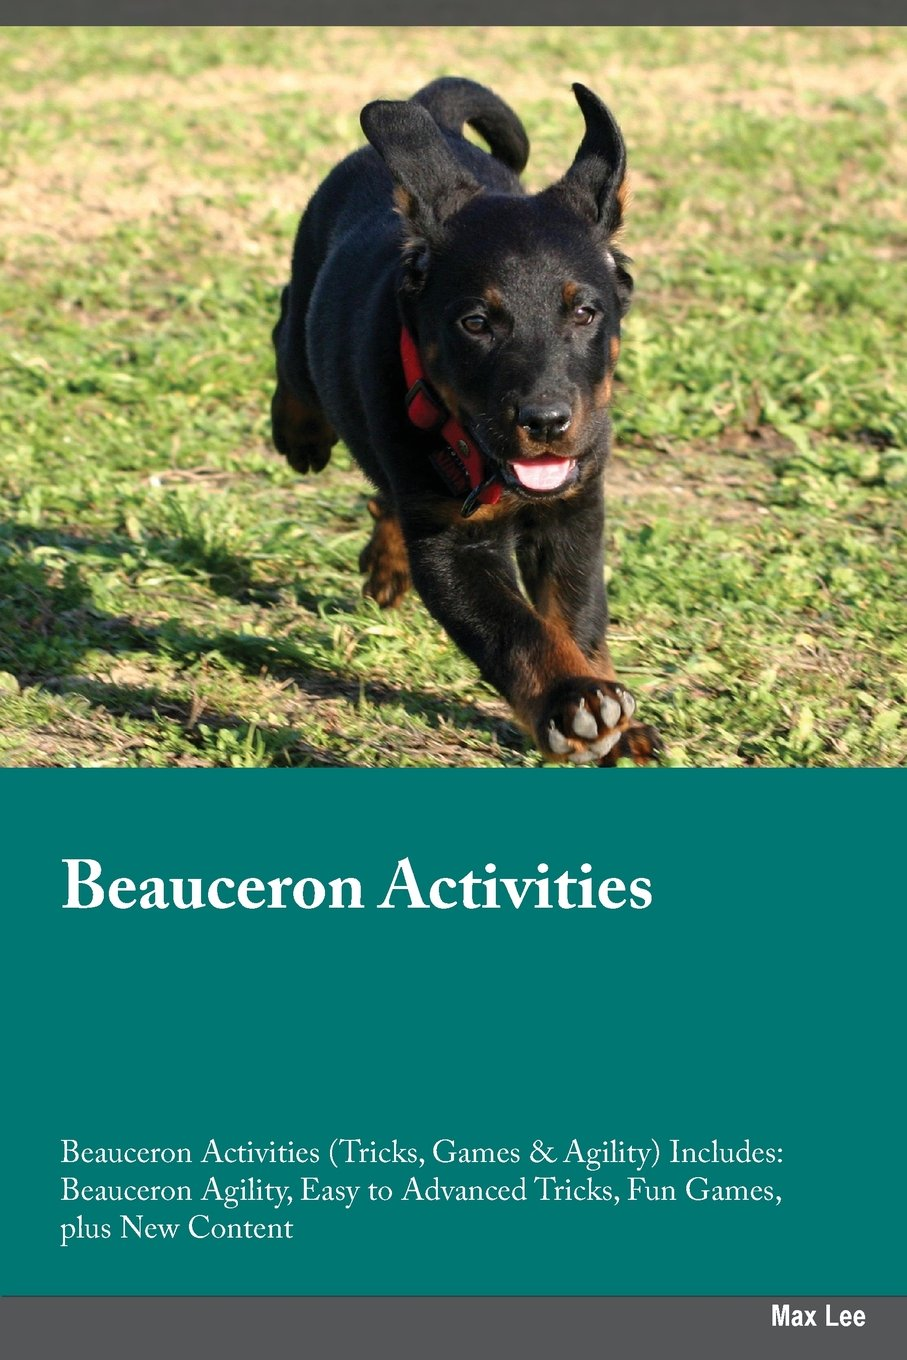 Beauceron Activities Beauceron Activities (Tricks, Games & Agility) Includes: Beauceron Agility, Easy to Advanced Tricks…